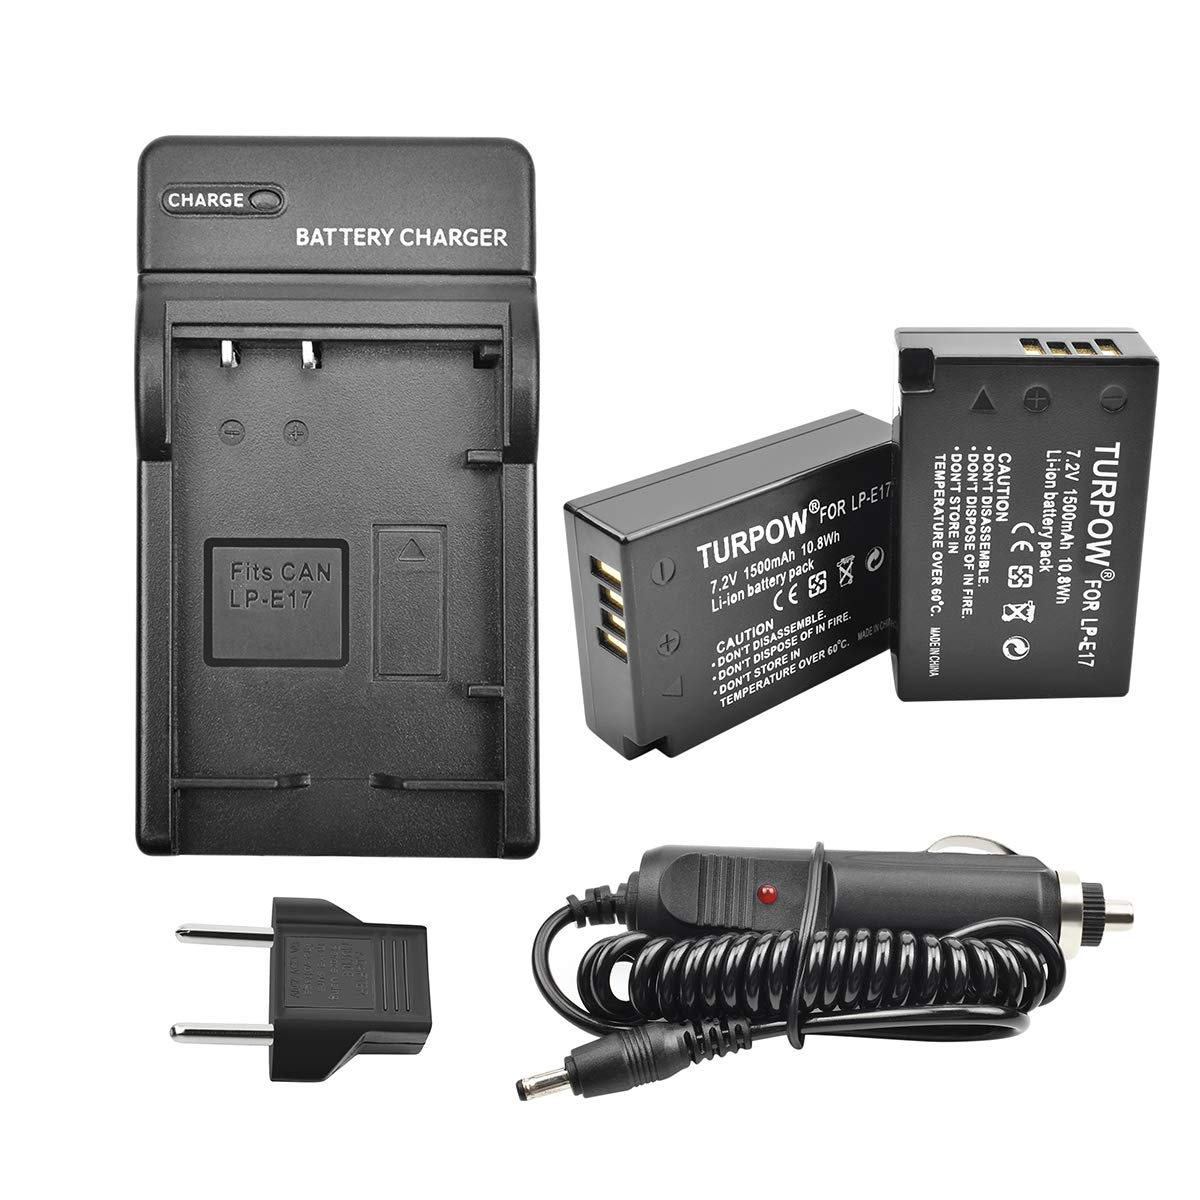 Turpow 2 Pack LP E17 Replacement Battery and Charger Compatible withCanon EOS RP, Rebel T6i, T6s, T7i, SL2, EOS 750D, 760D, 77D, 800D, 8000D, 200D, EOS M3, M5, M6 Digital SLR Camera